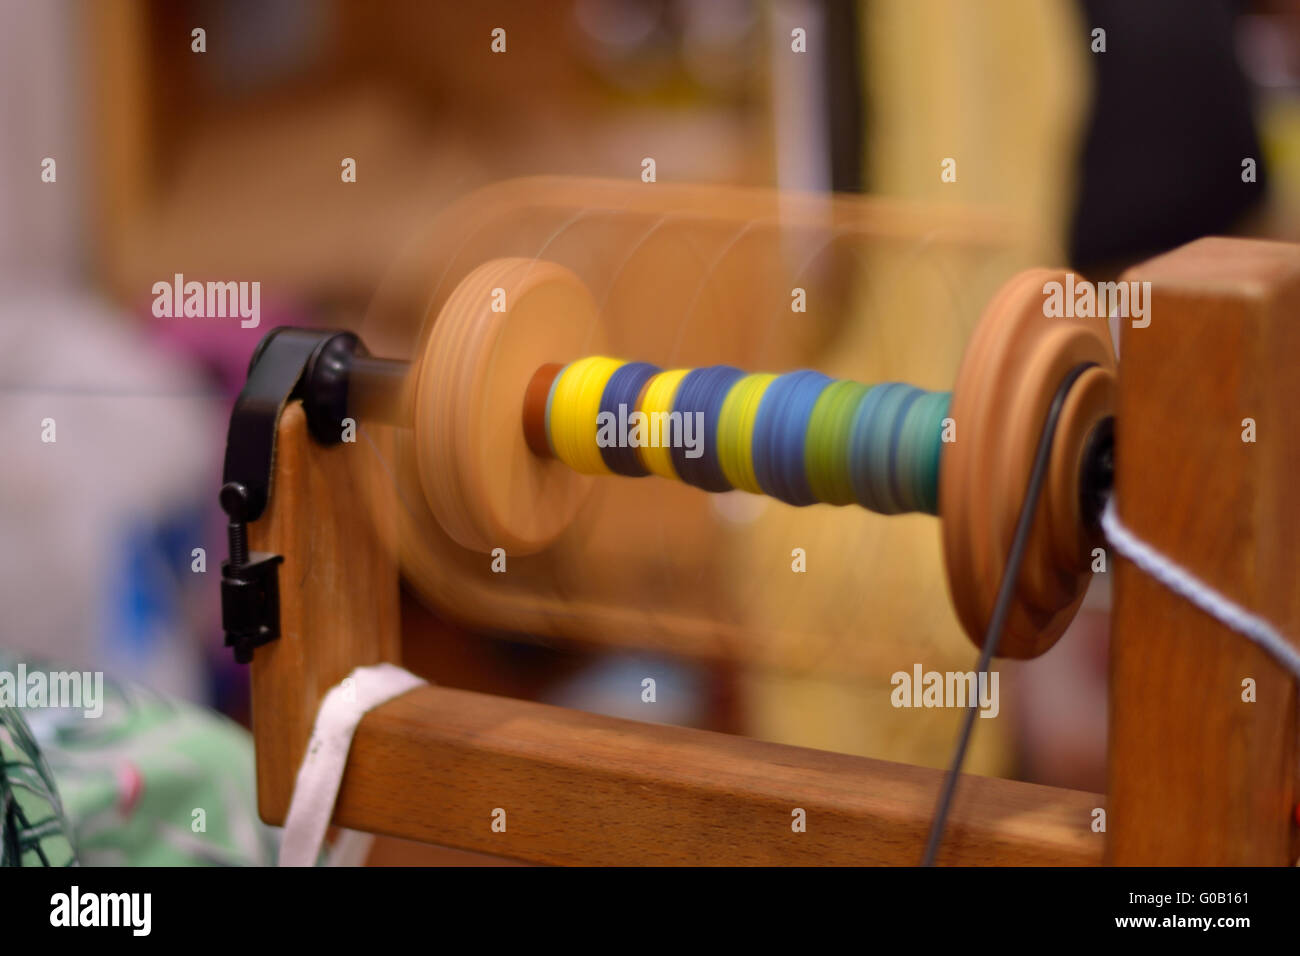 Spinning wheel spool rotates with colored wool - Stock Image